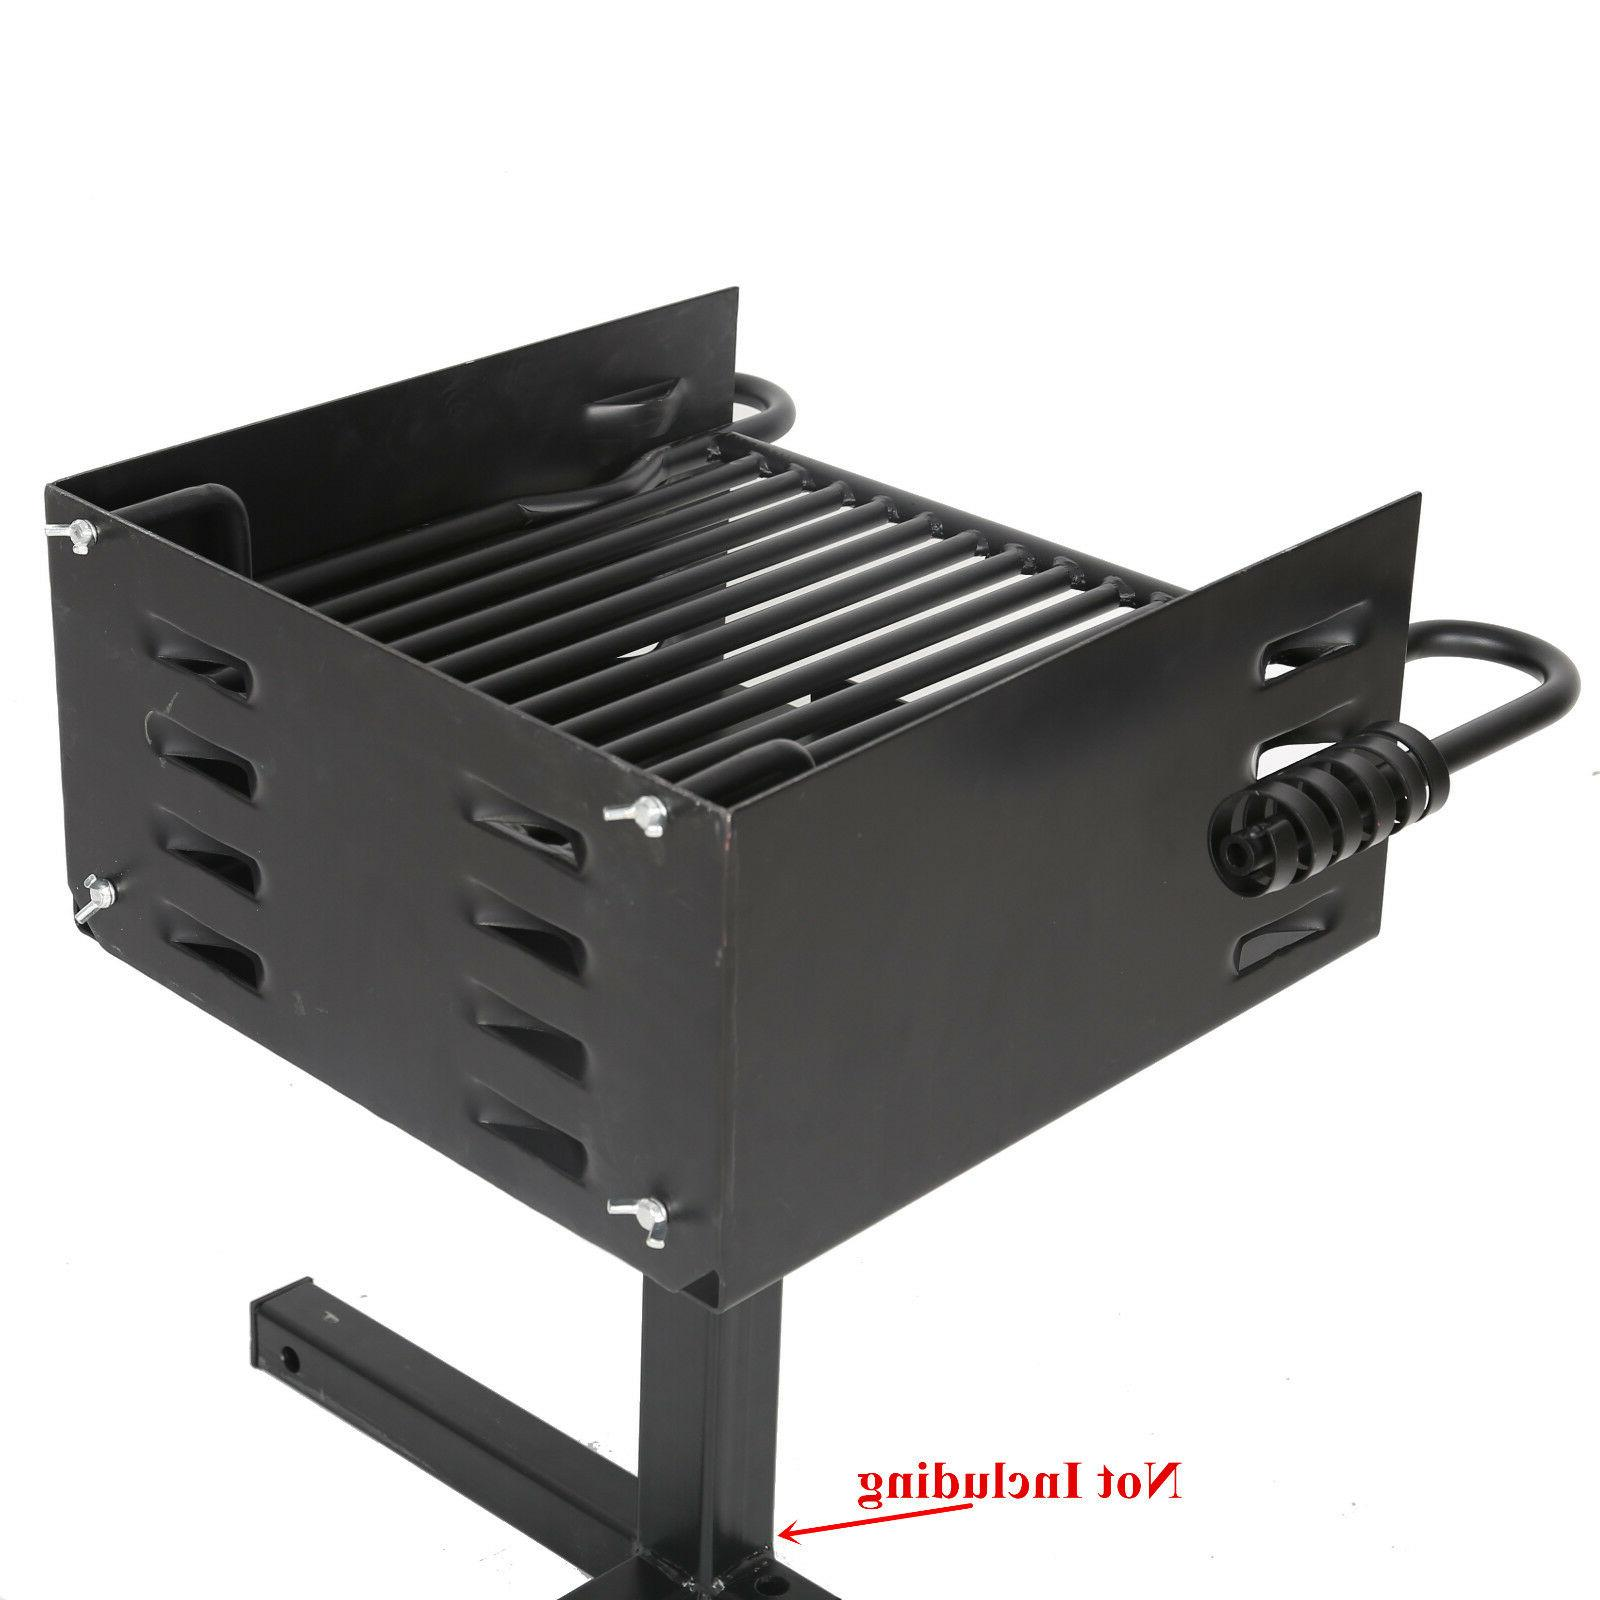 Outdoor Barbecue Patio Meat Cooker BBQ Backyard